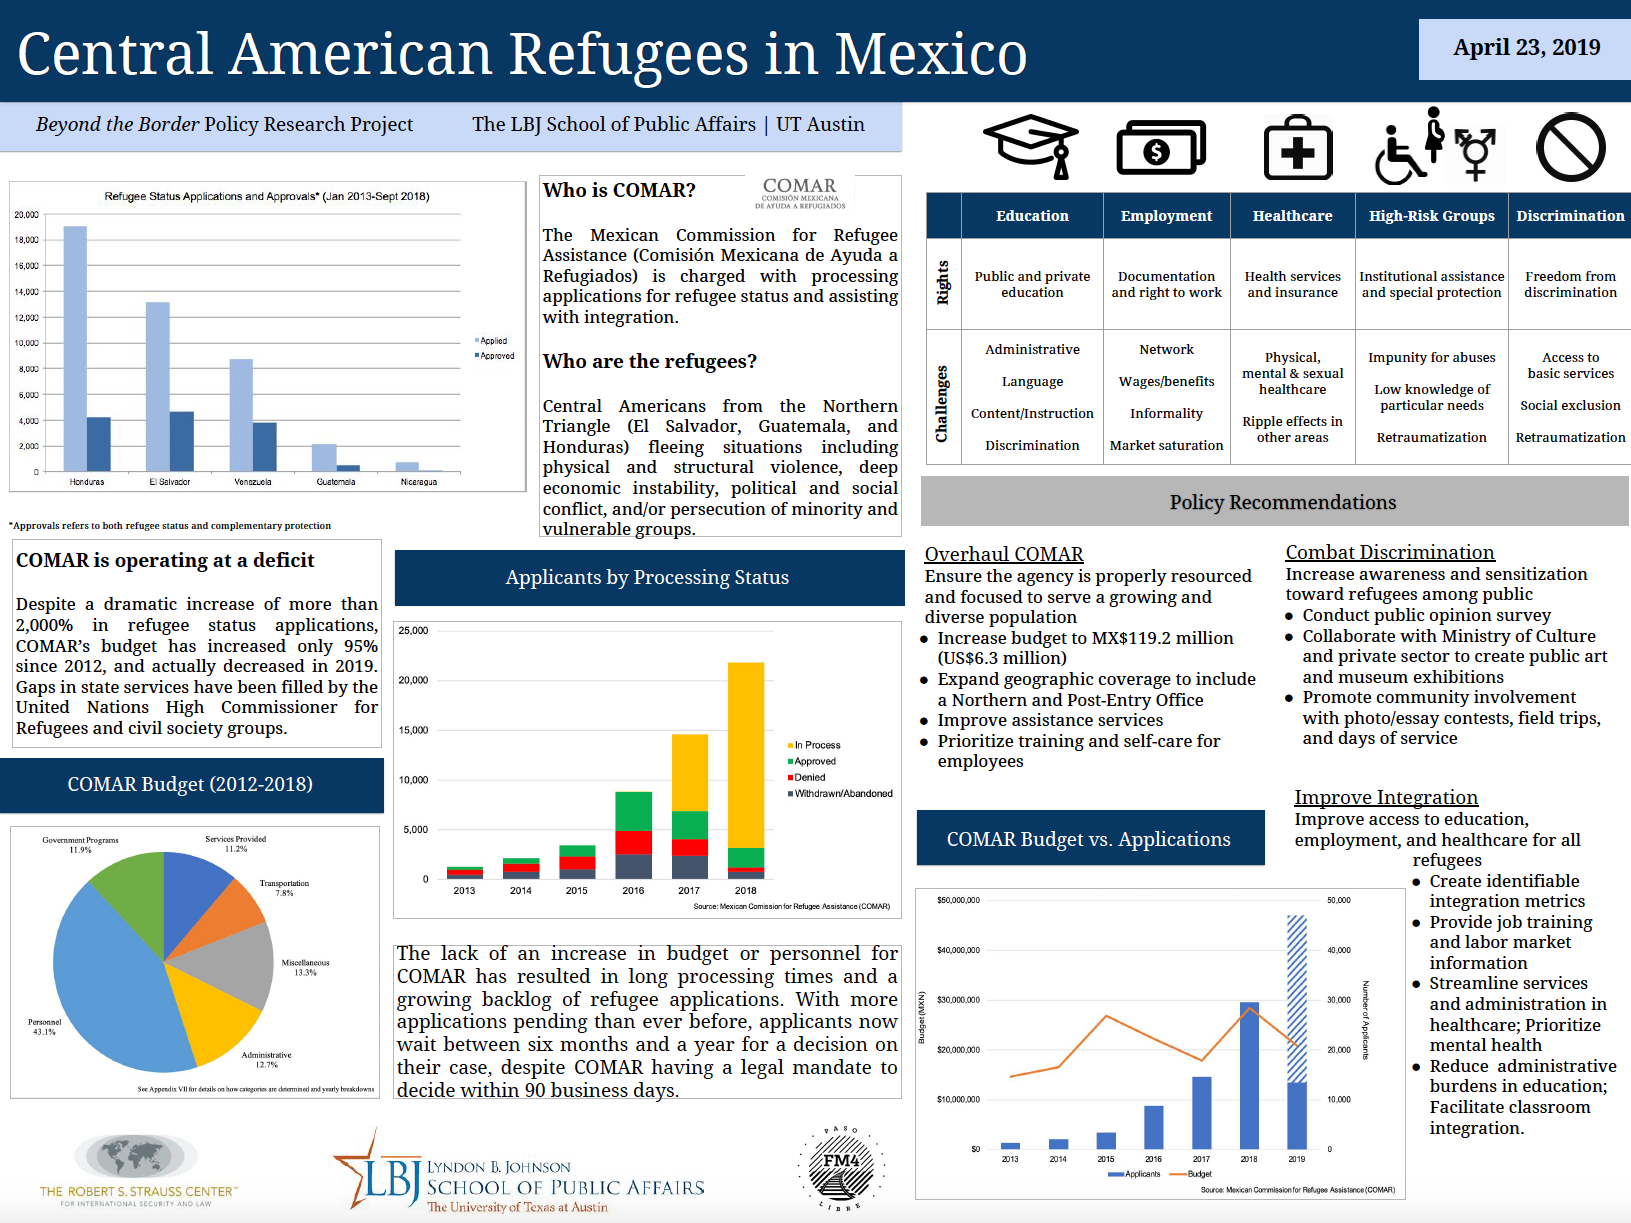 Innovation Bound 2019 research poster: Obstacles to Refugee Integration in Mexico